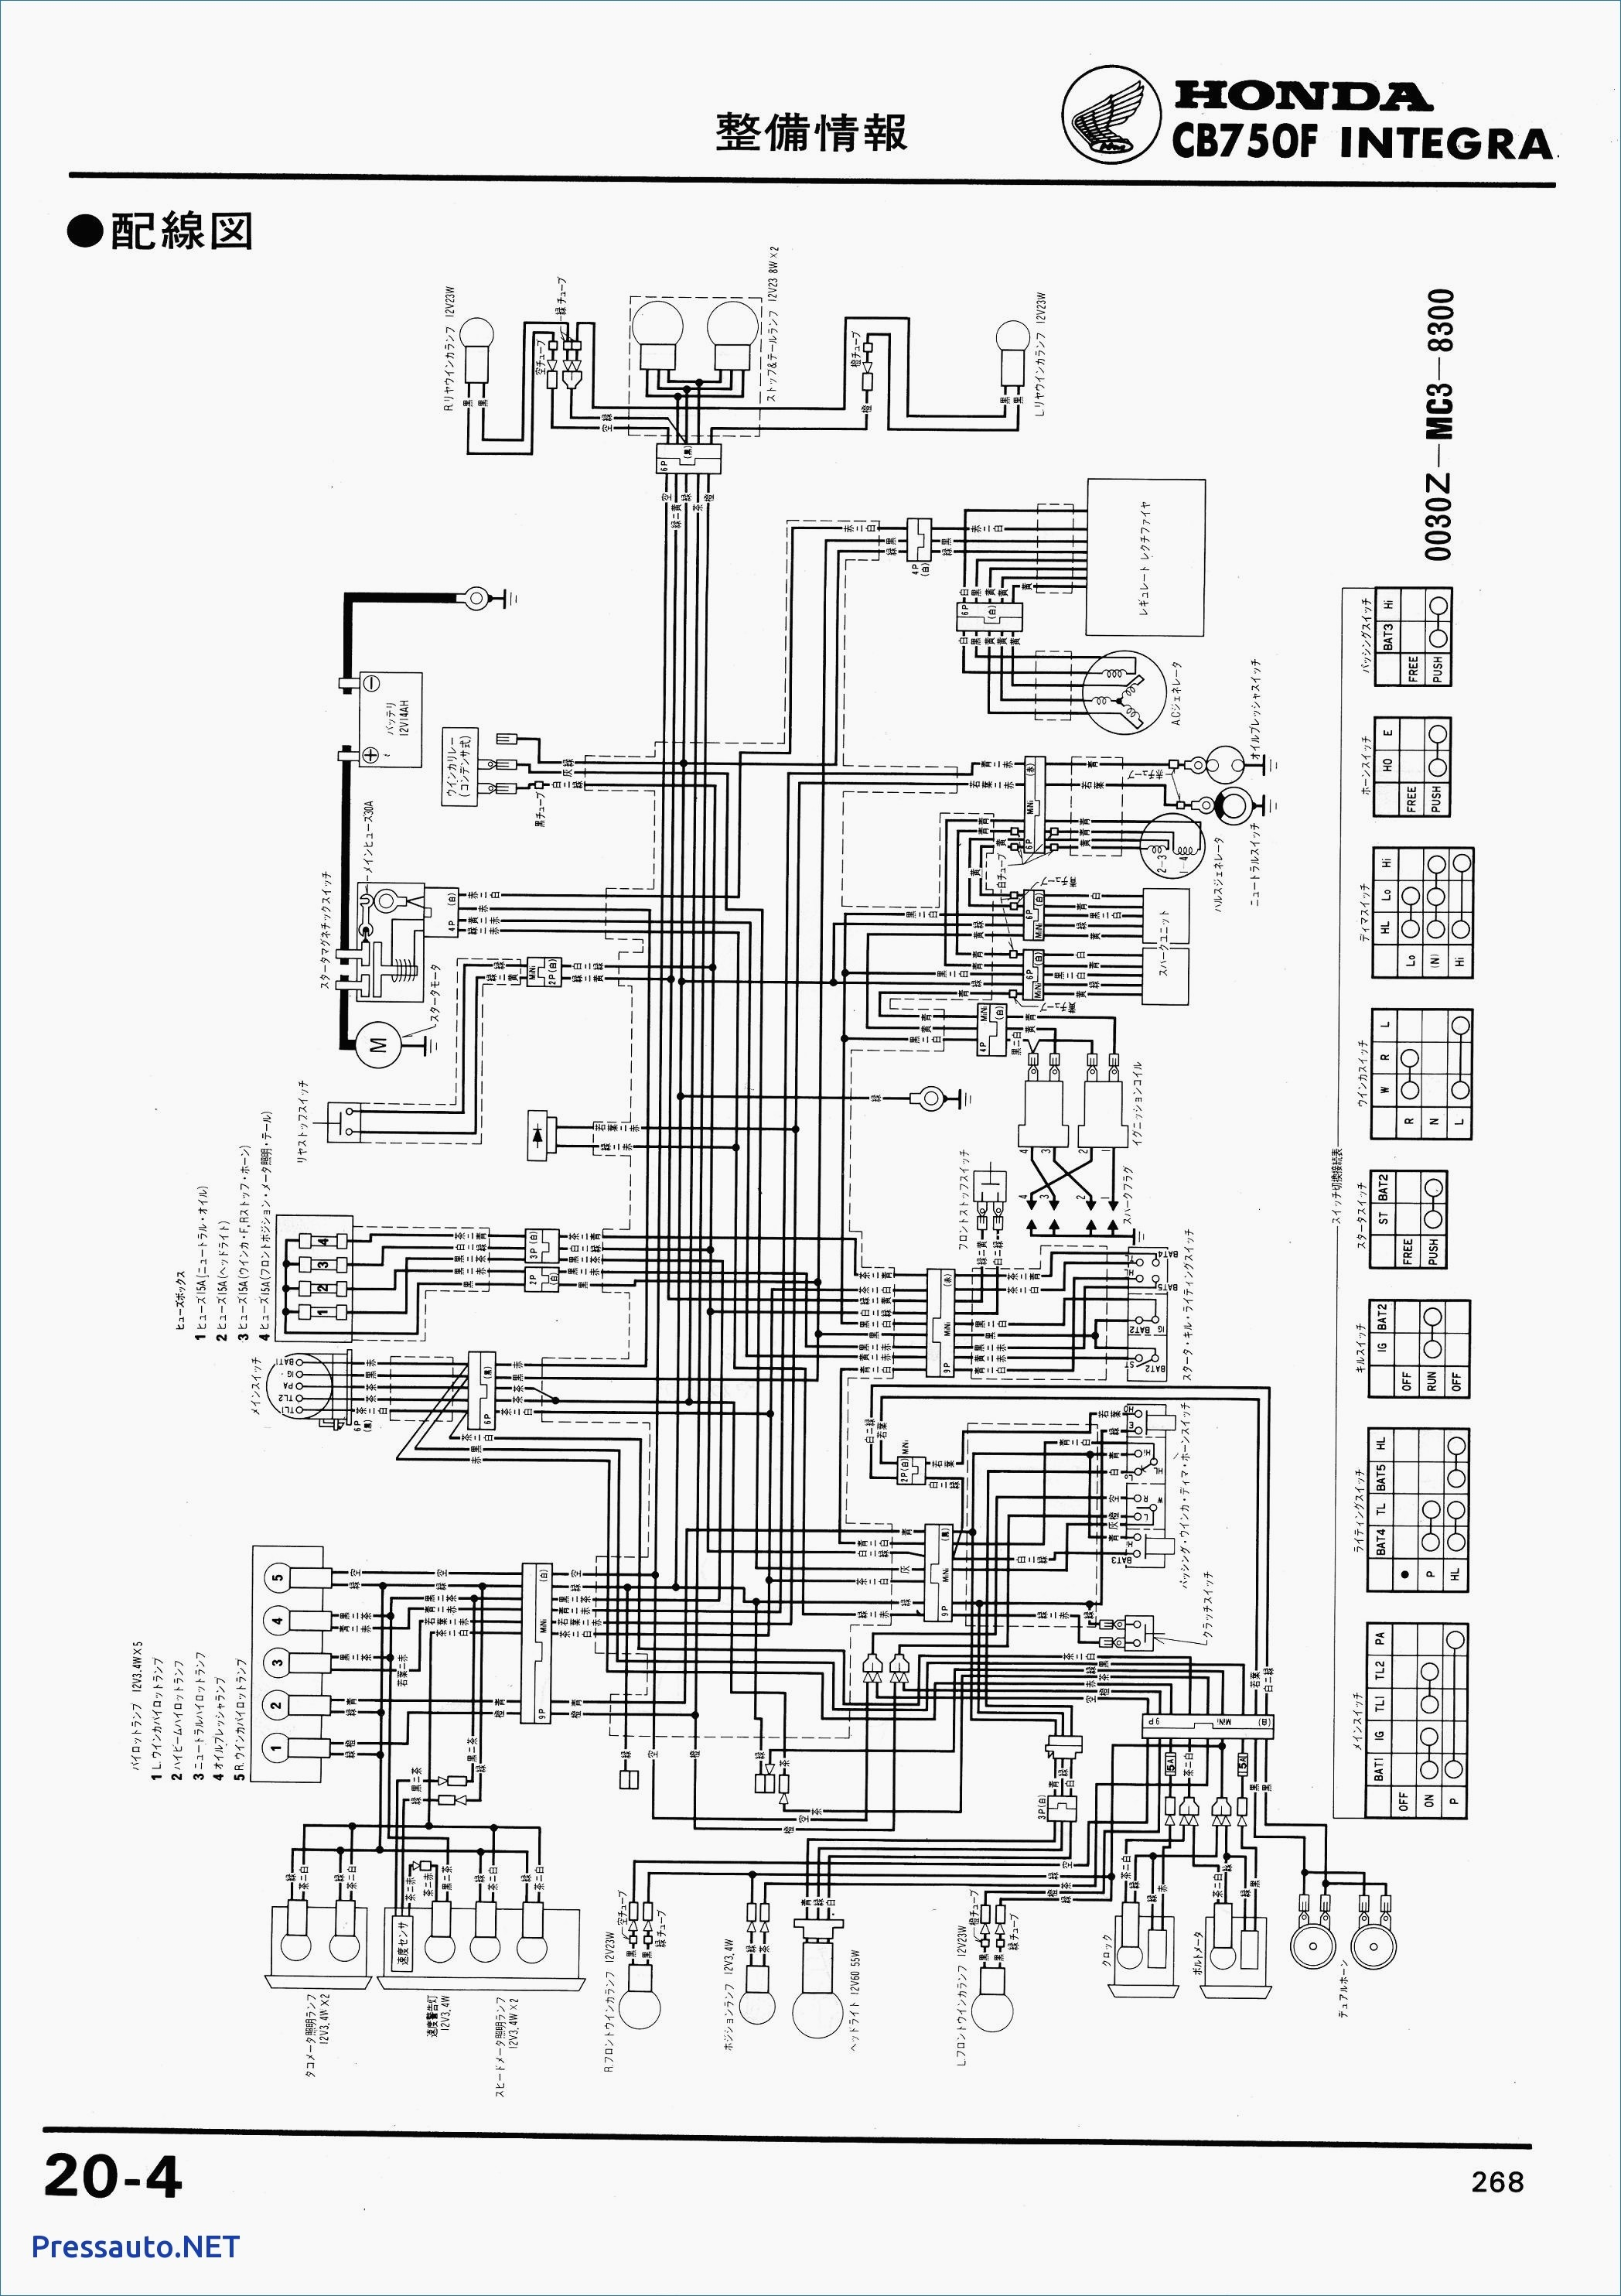 Get Yale Forklift Ignition Wiring Diagrams Background